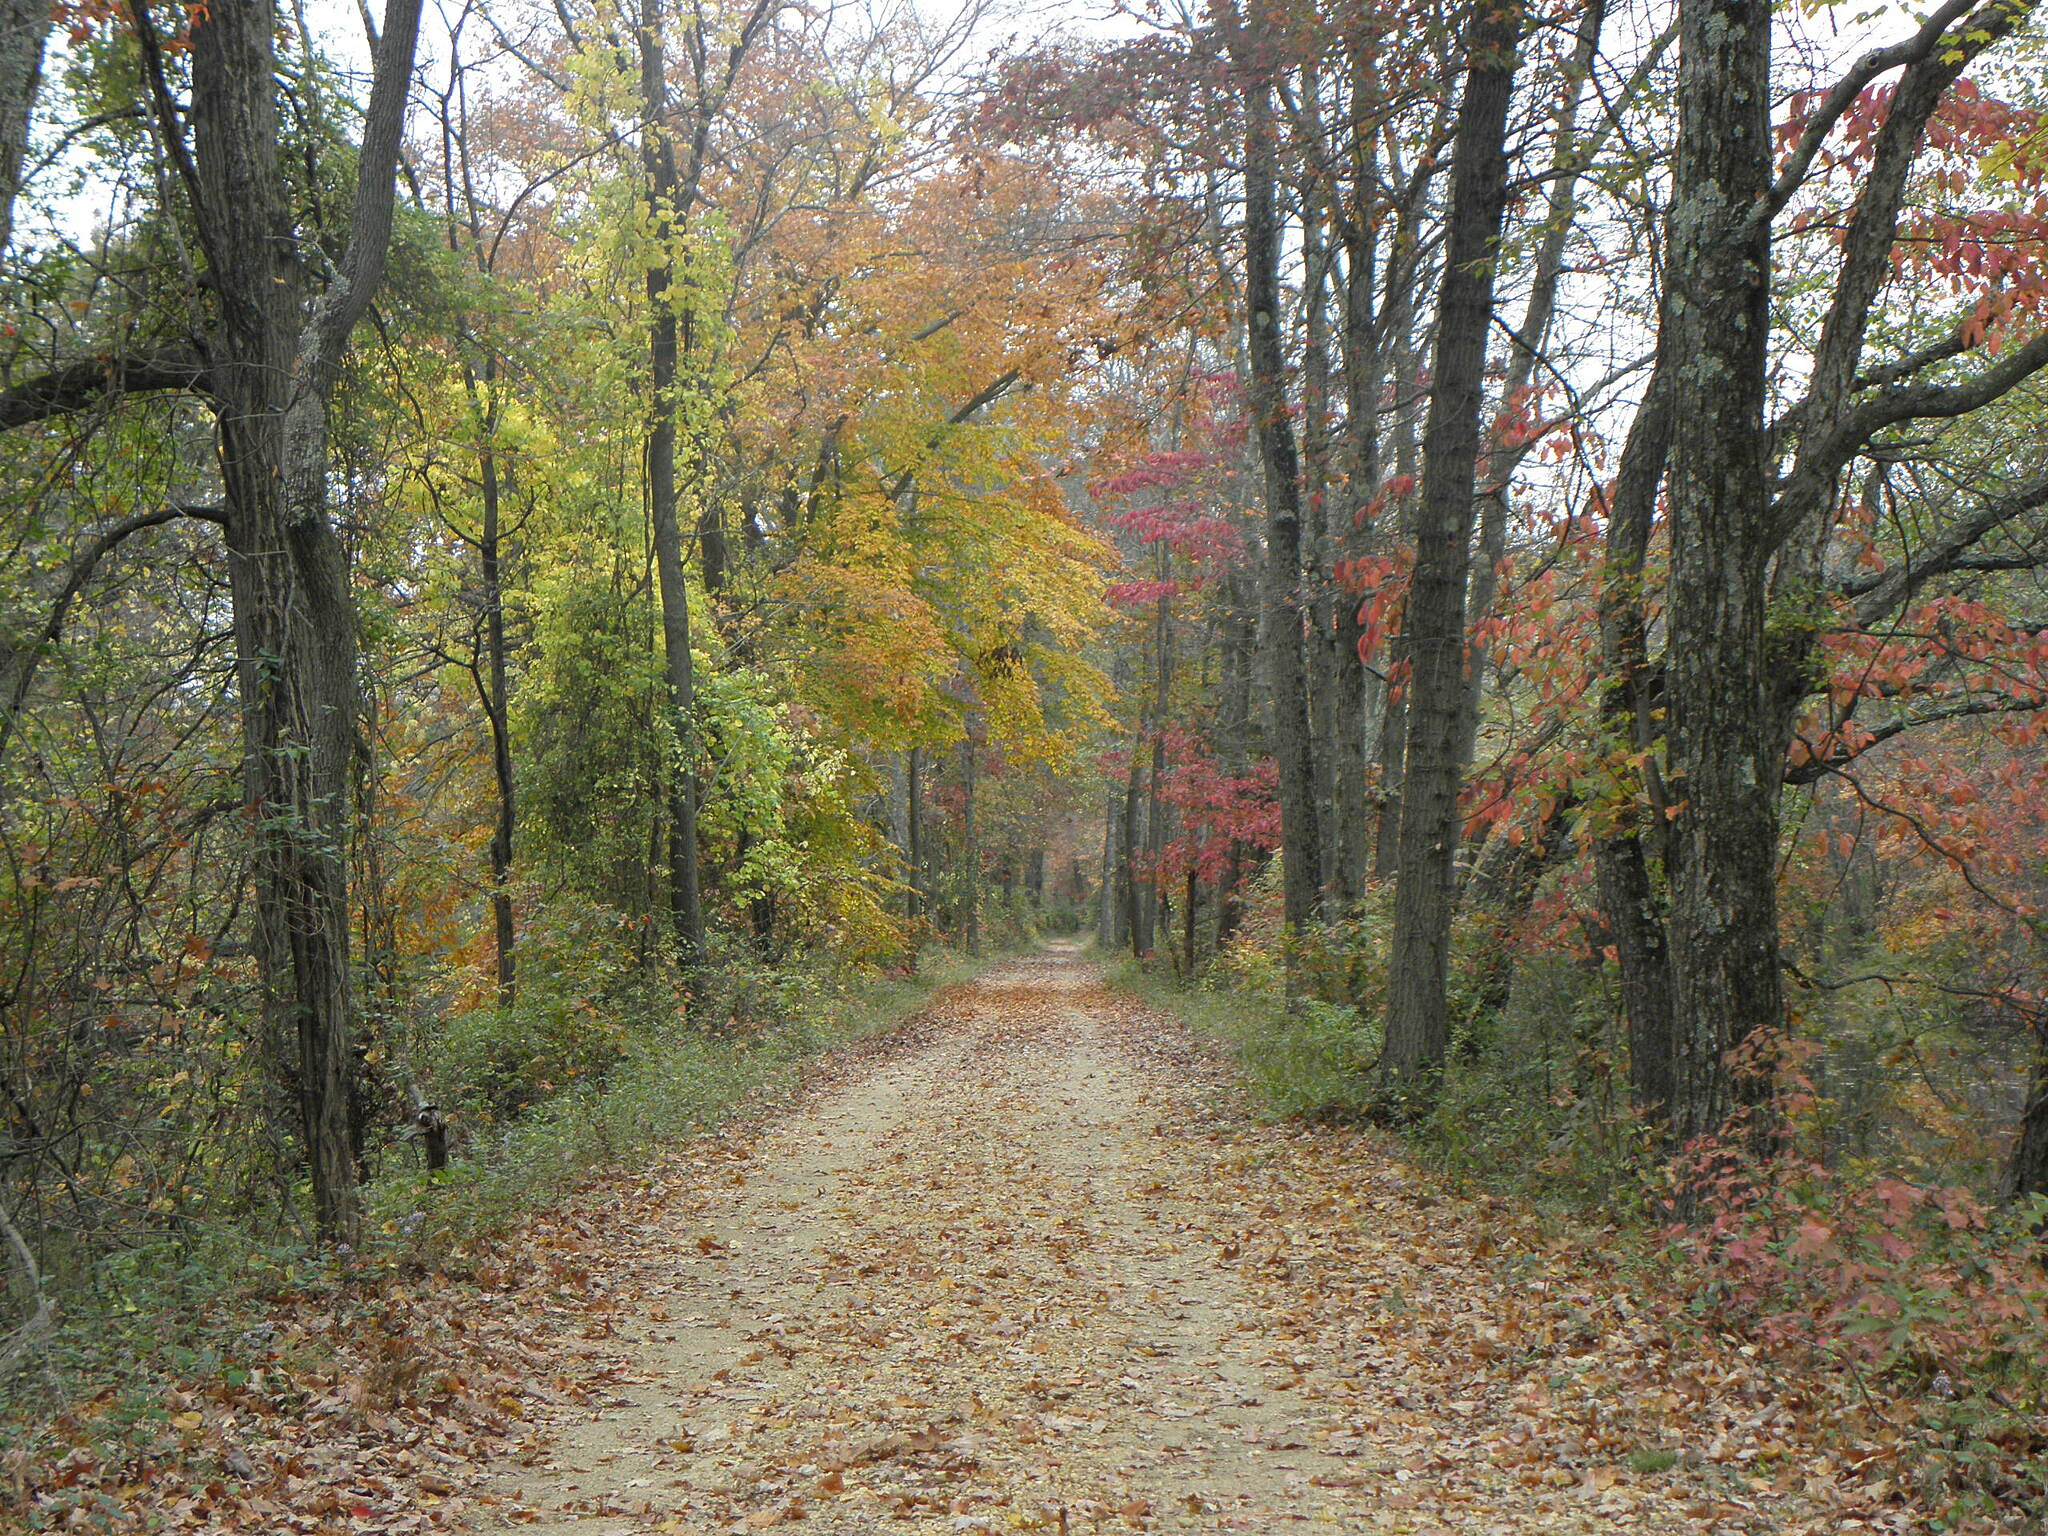 Delaware and Raritan Canal State Park Trail Fall colors on the trail in late October